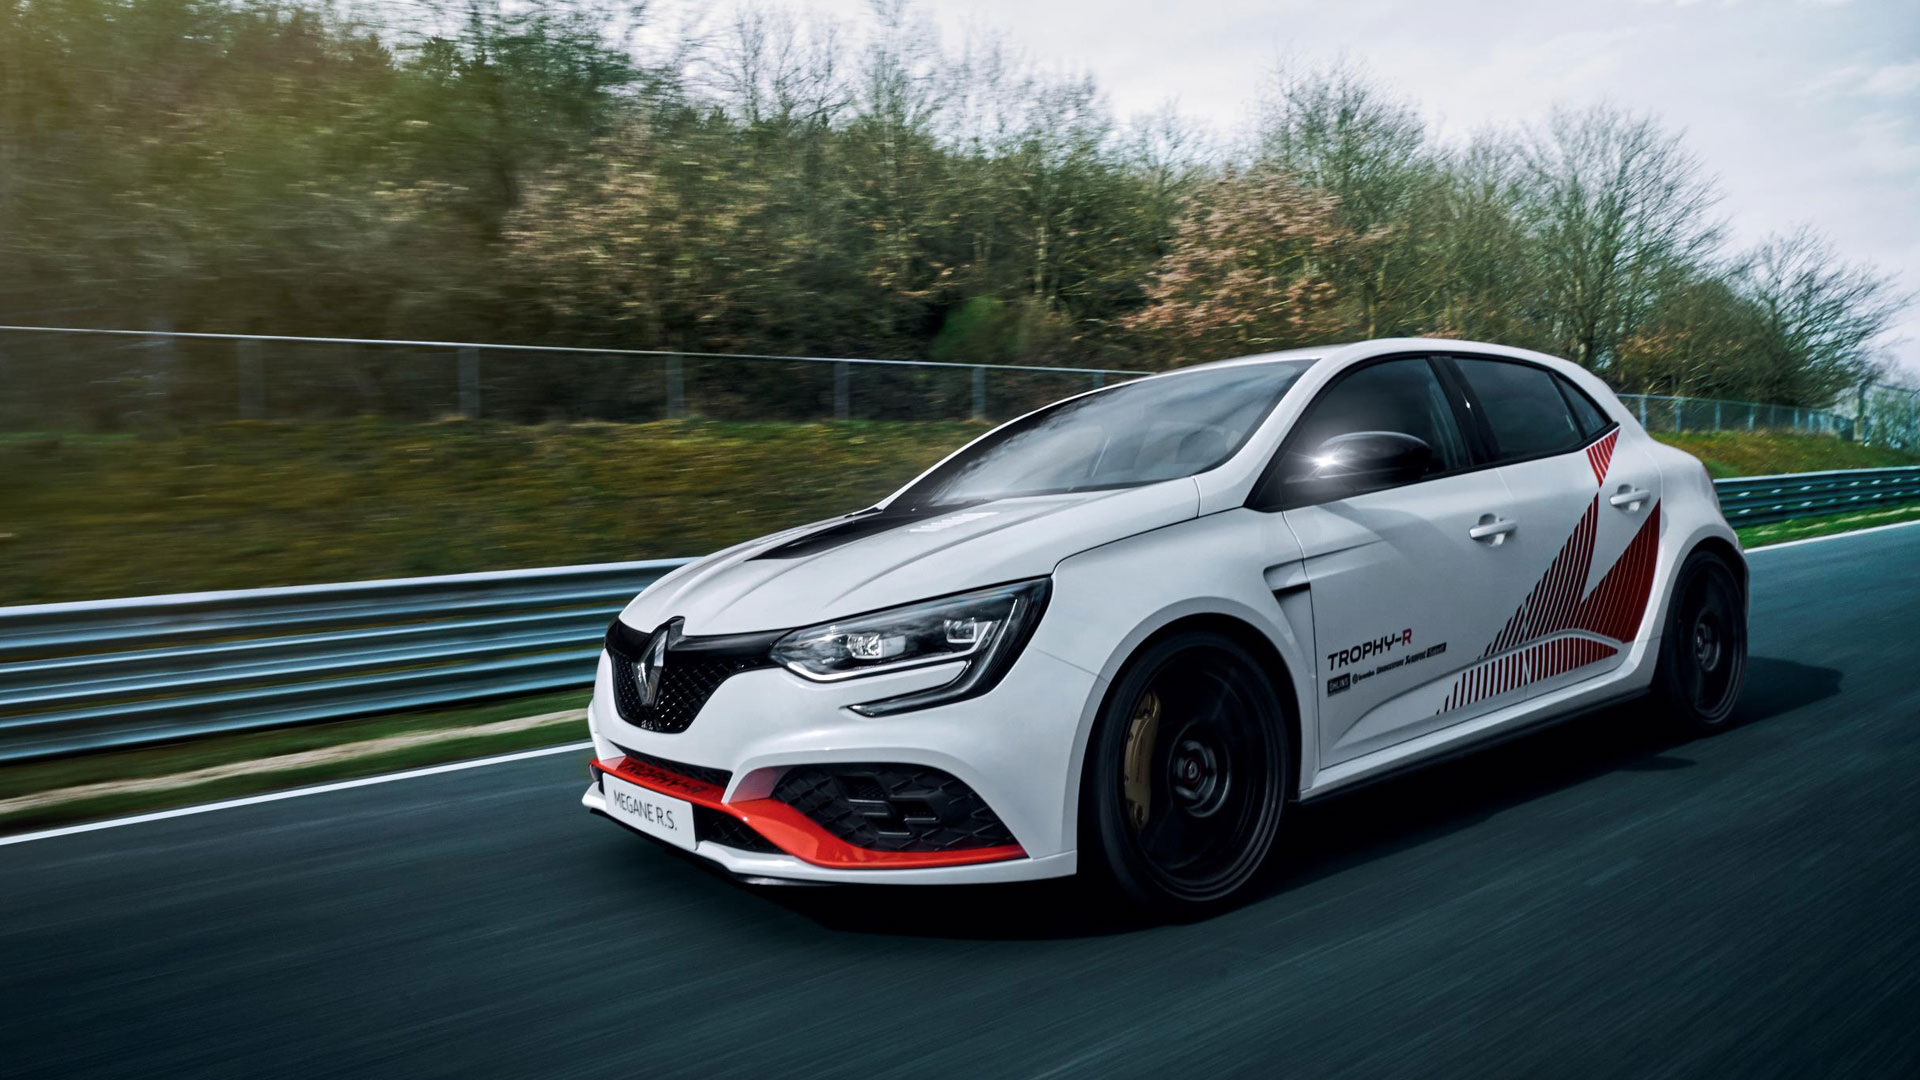 Fastest front-wheel-drive production car